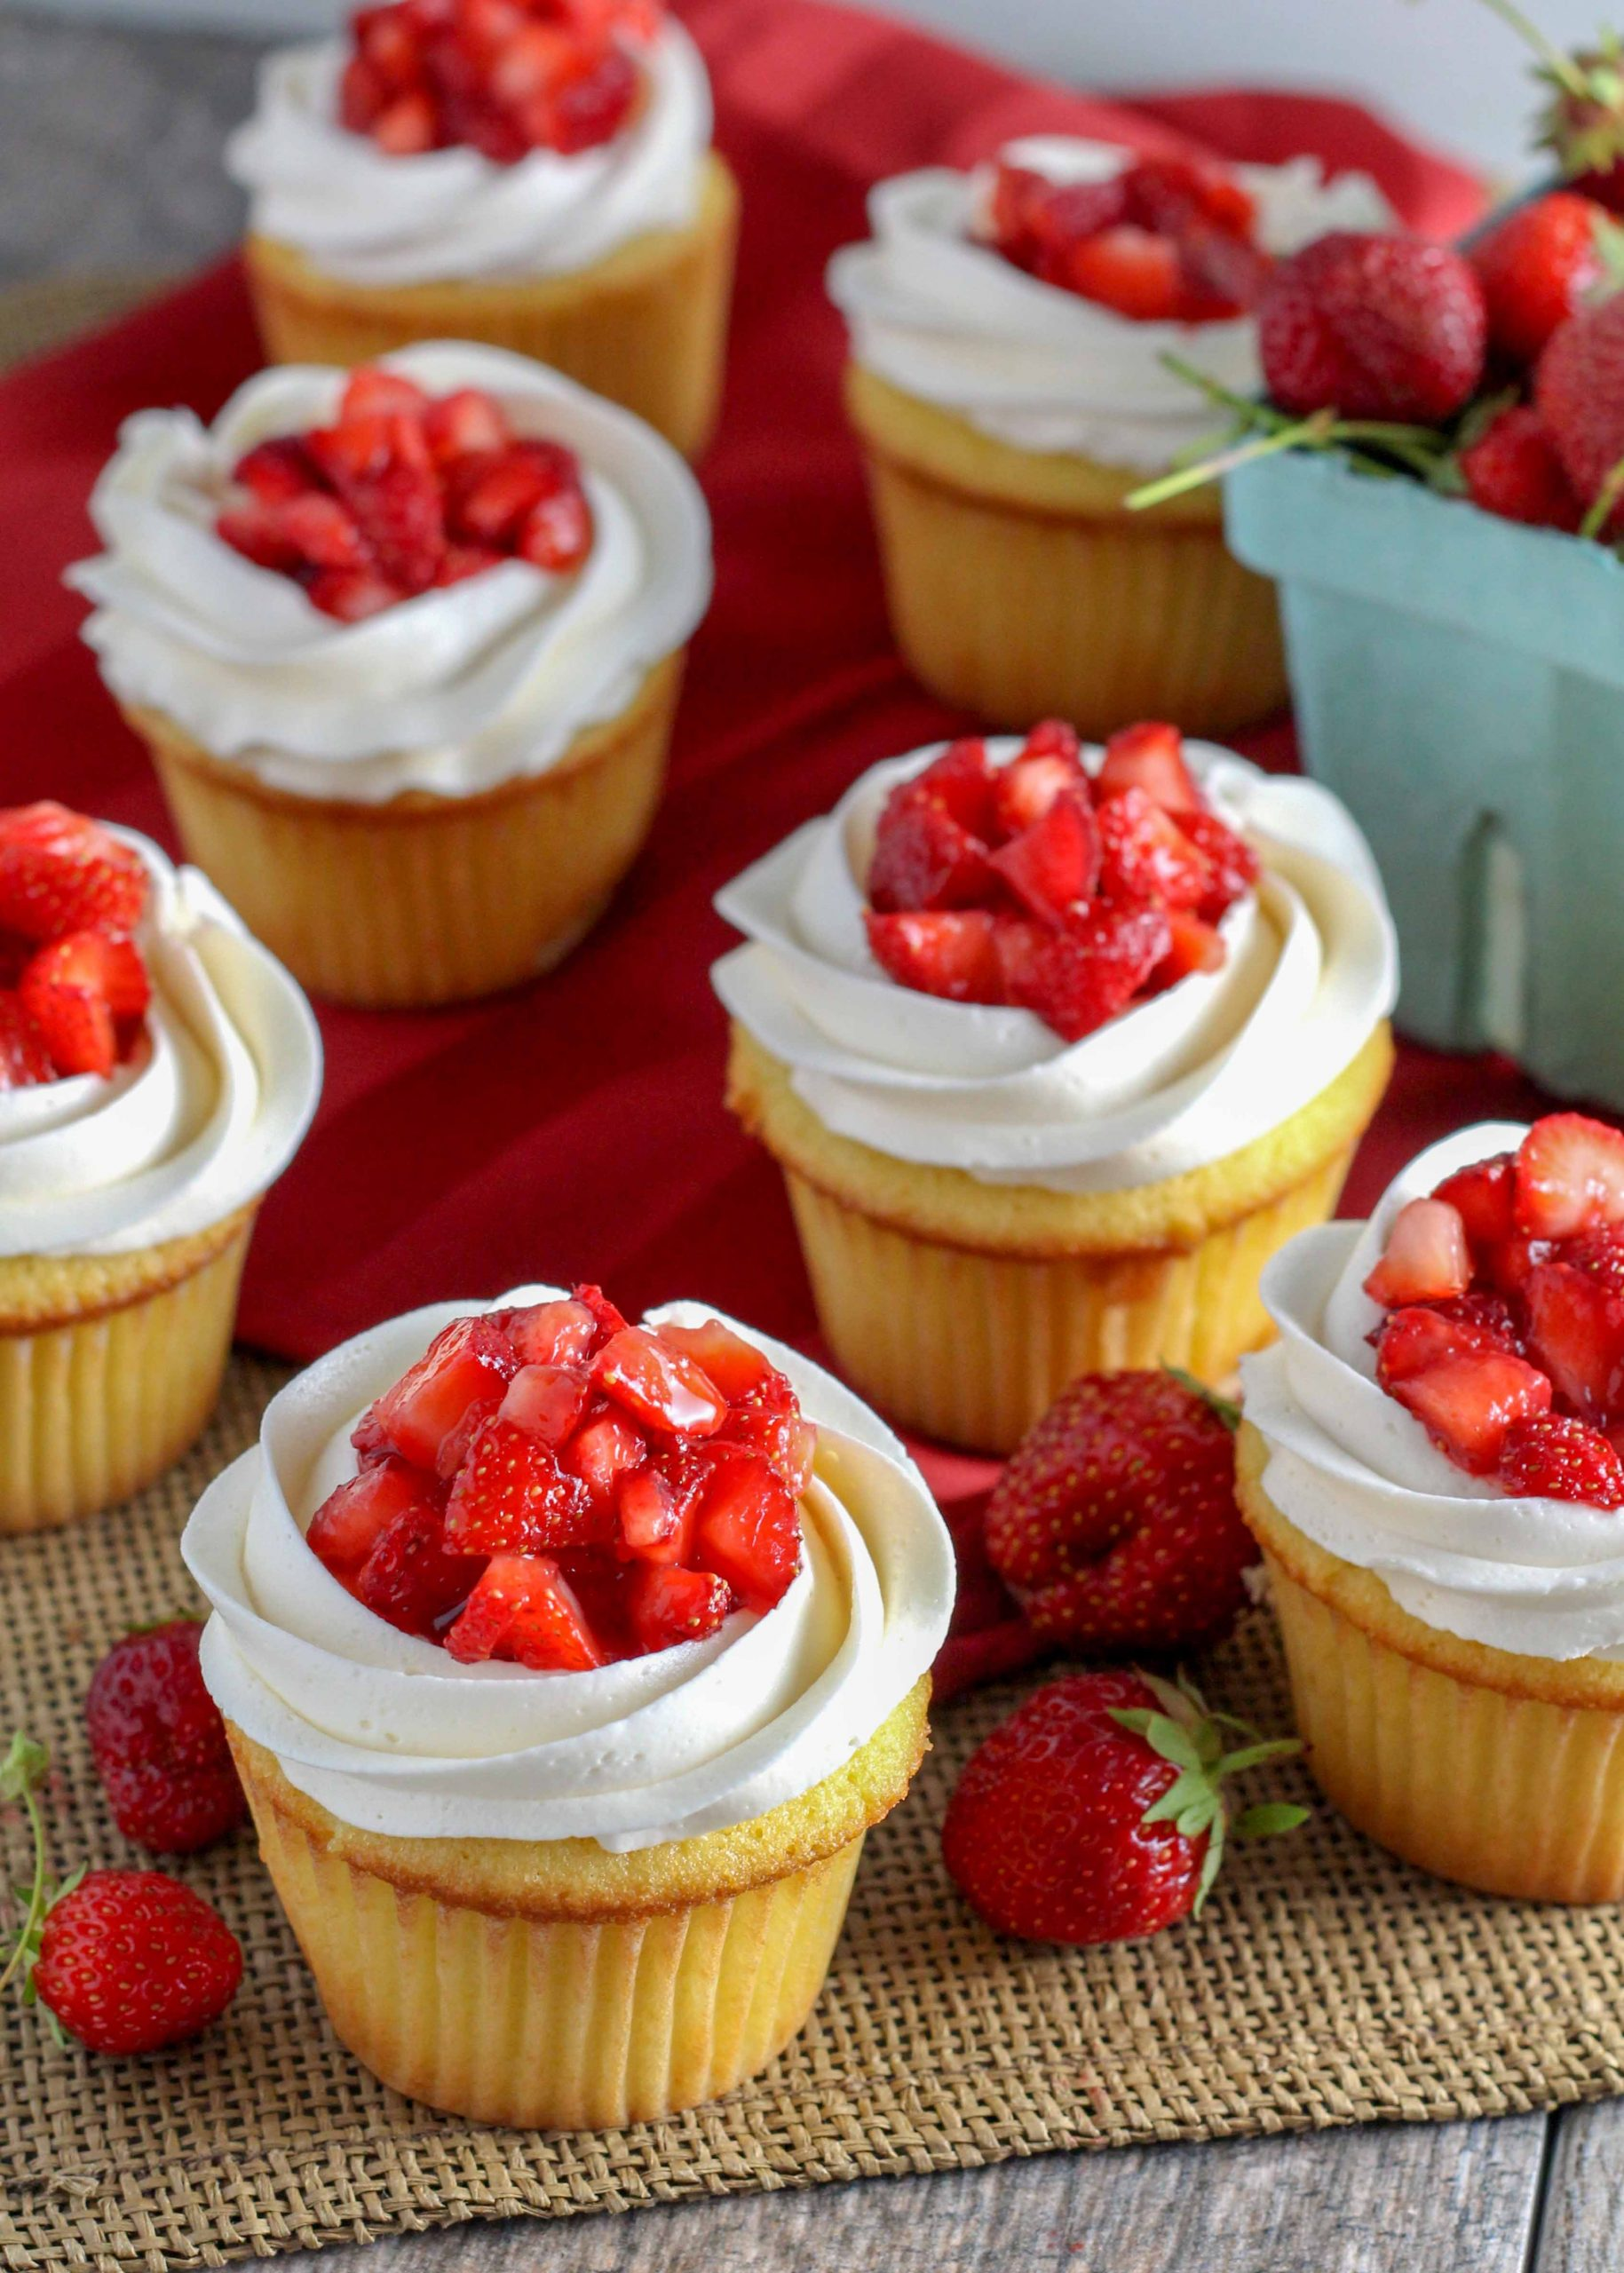 Strawberry Shortcake Cupcakes are a summer treat that you're going to love.